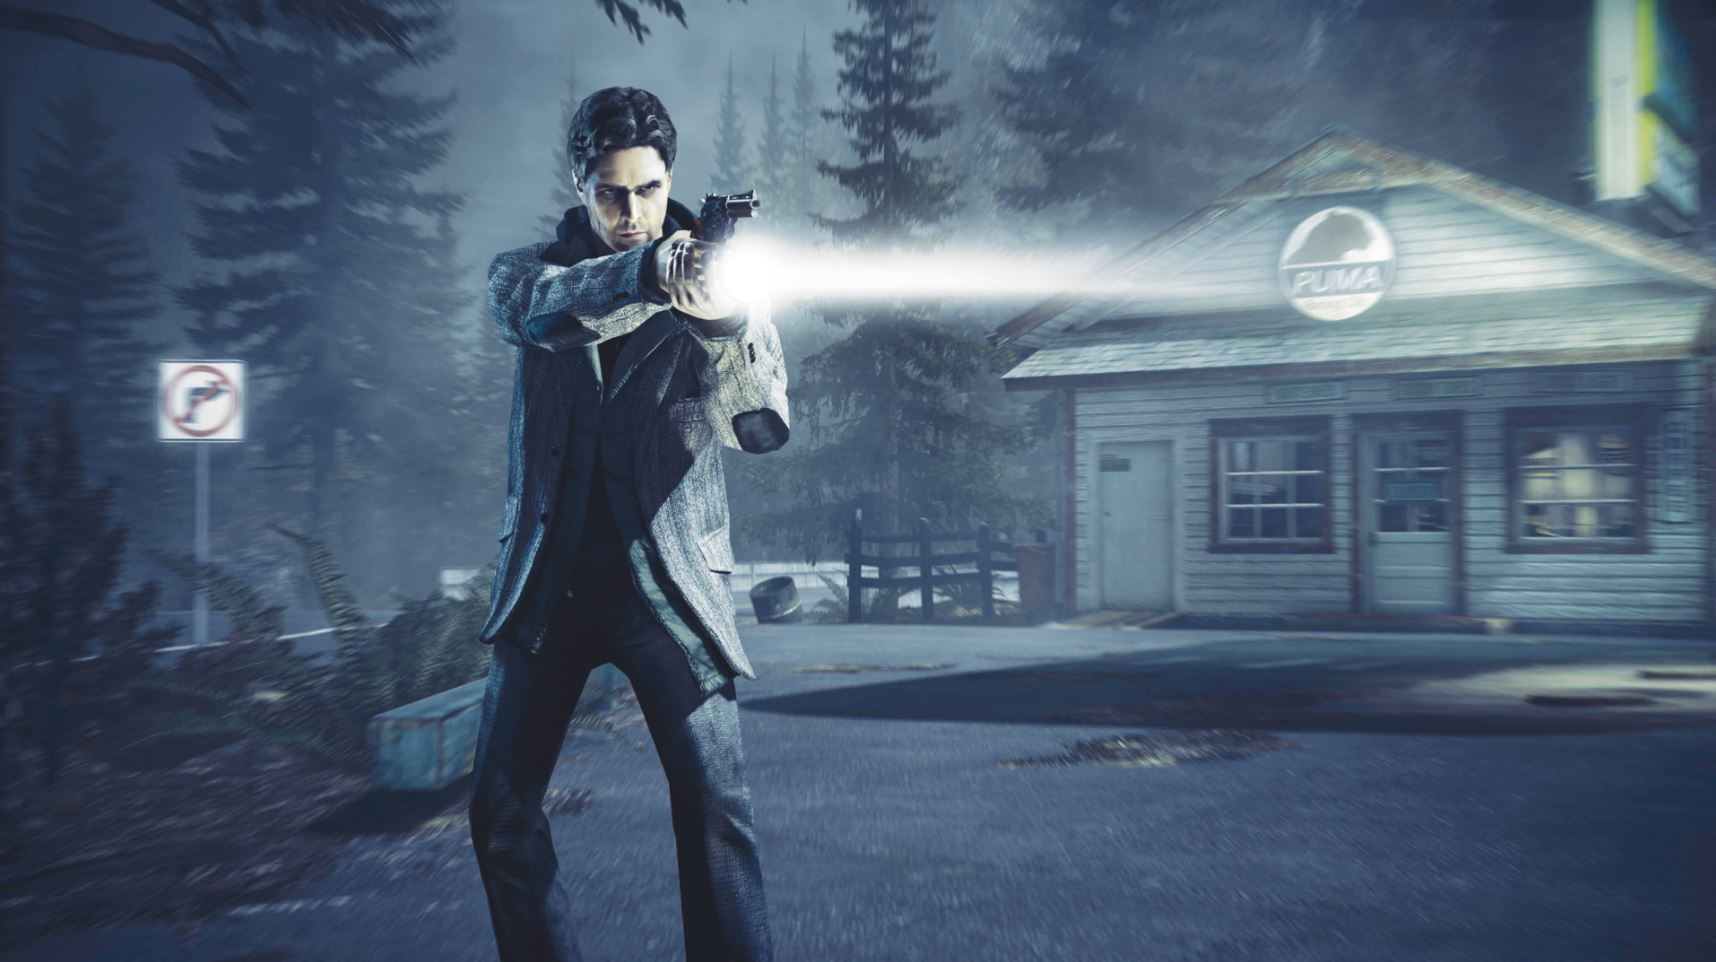 remedy-is-making-alan-wake-2-and-epic-games-are-publishing-it-for-multiple-platforms